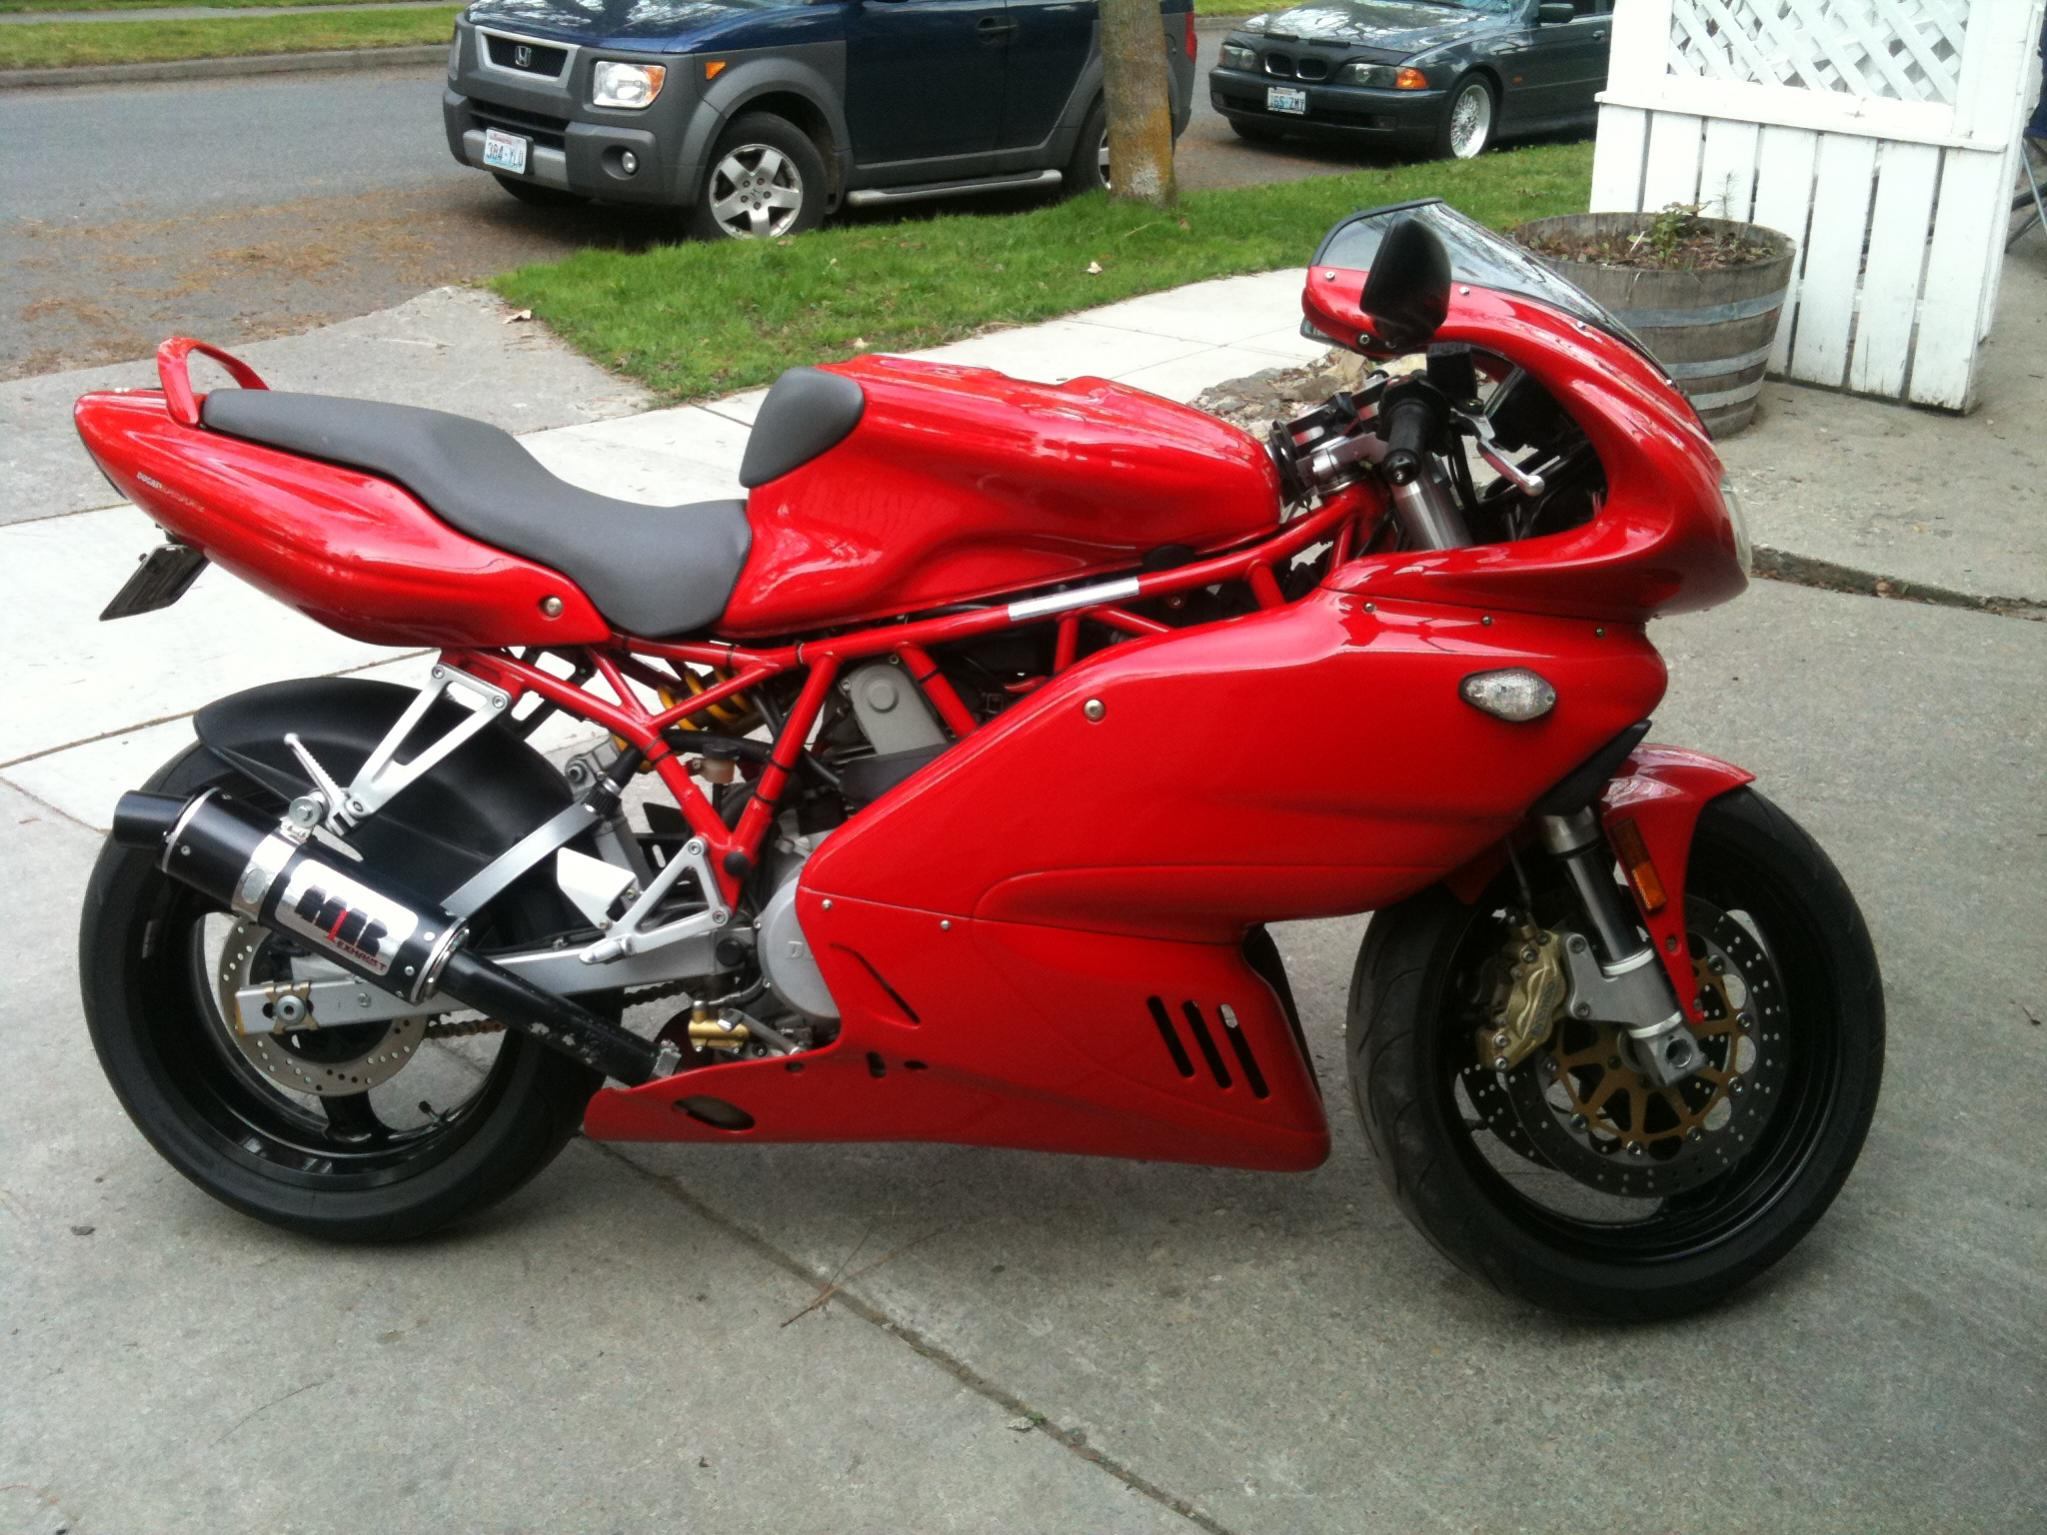 2006 800ss looking for a good home - ducati.ms - the ultimate